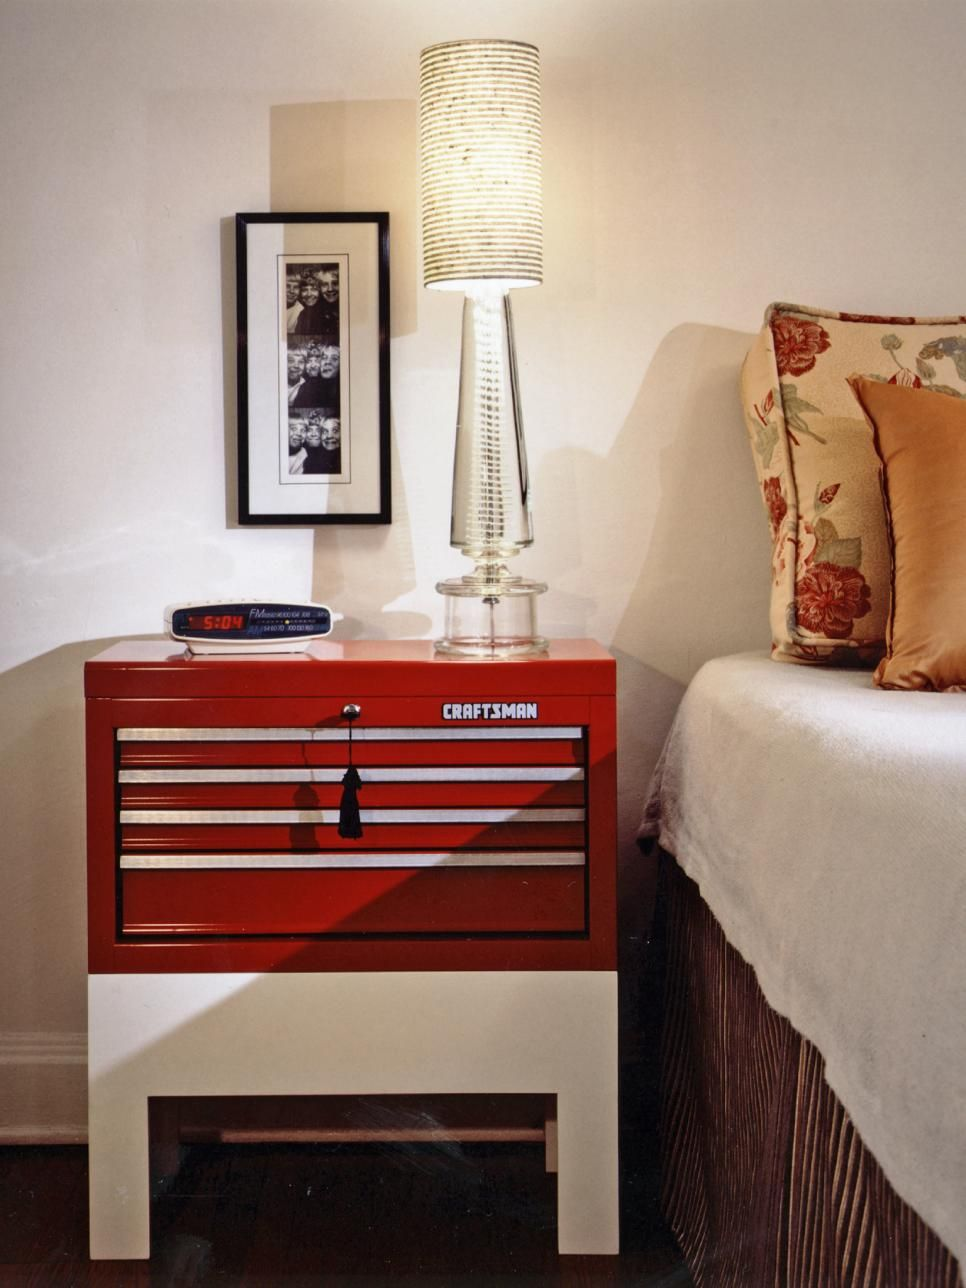 12 Ideas for Nightstand Alternatives | Craftsman, Nightstands and ...